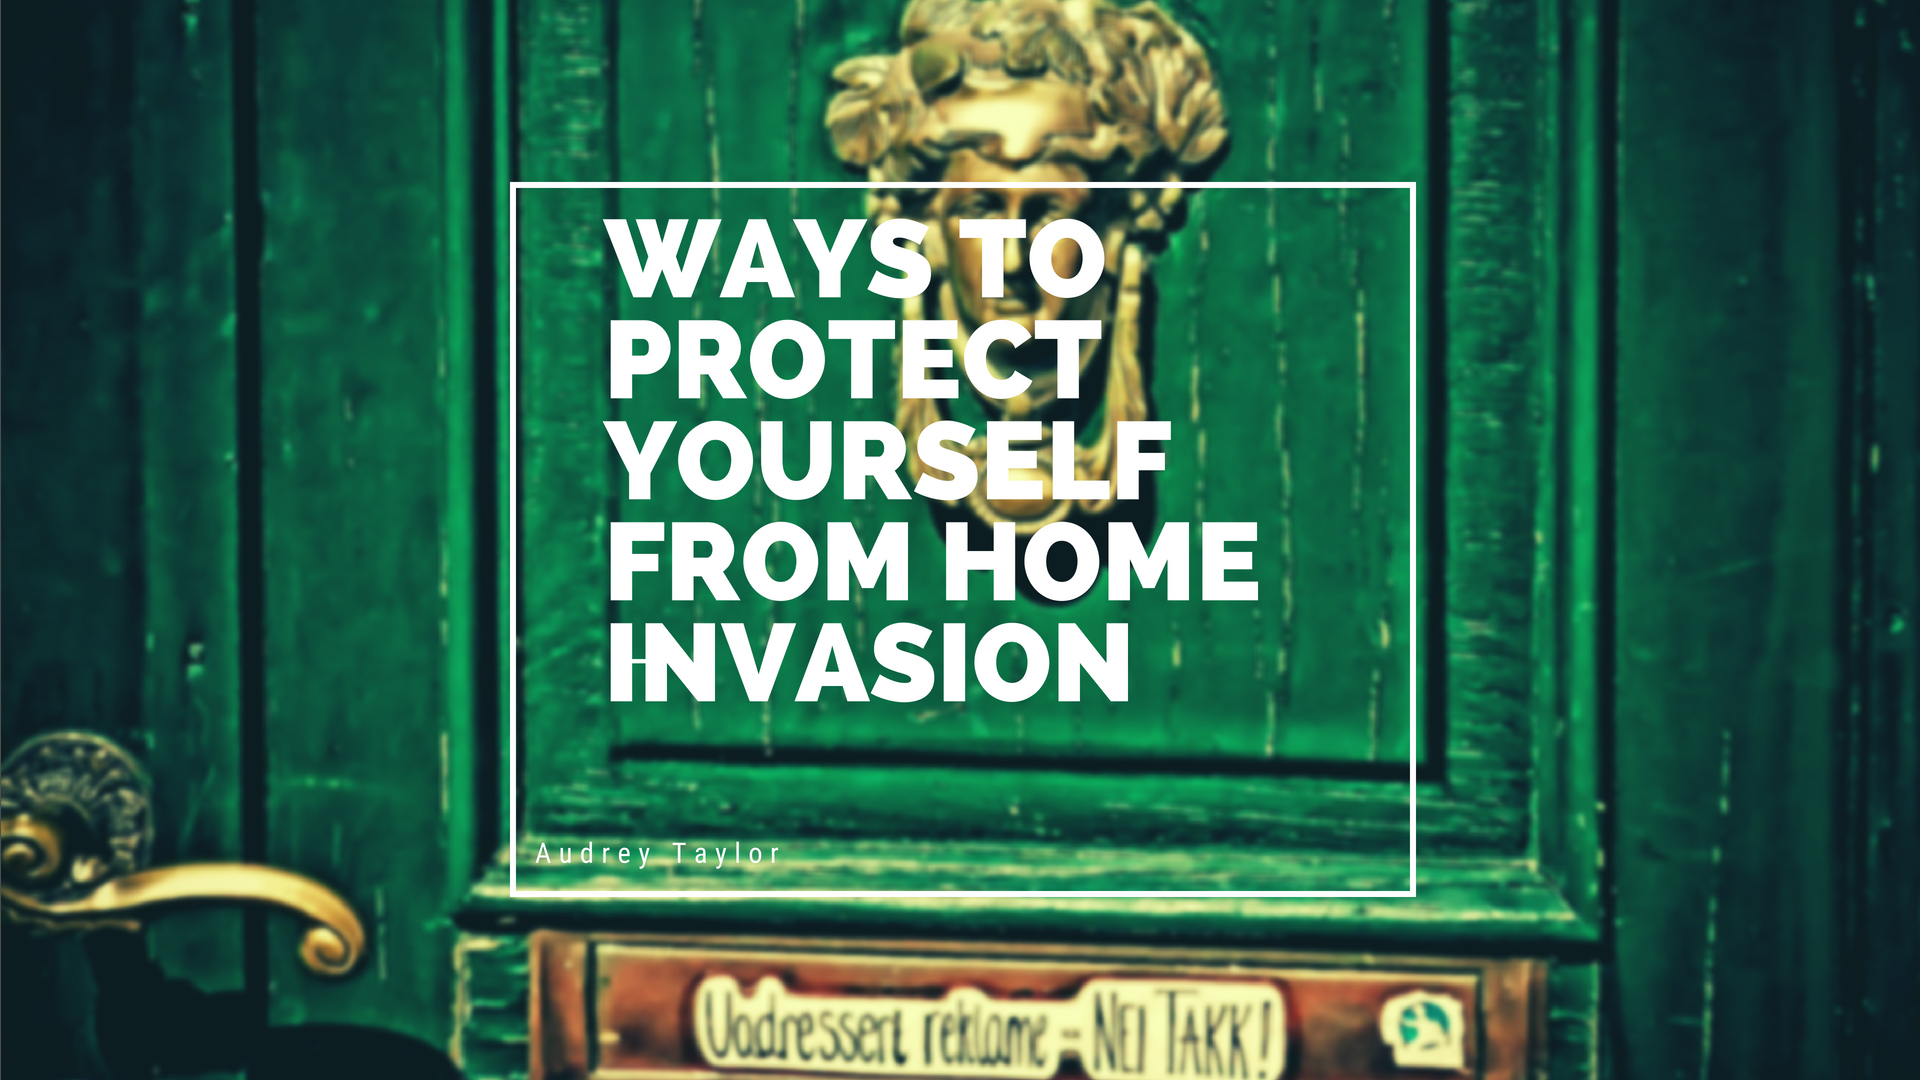 Ways to Protect Yourself from Home Invasion